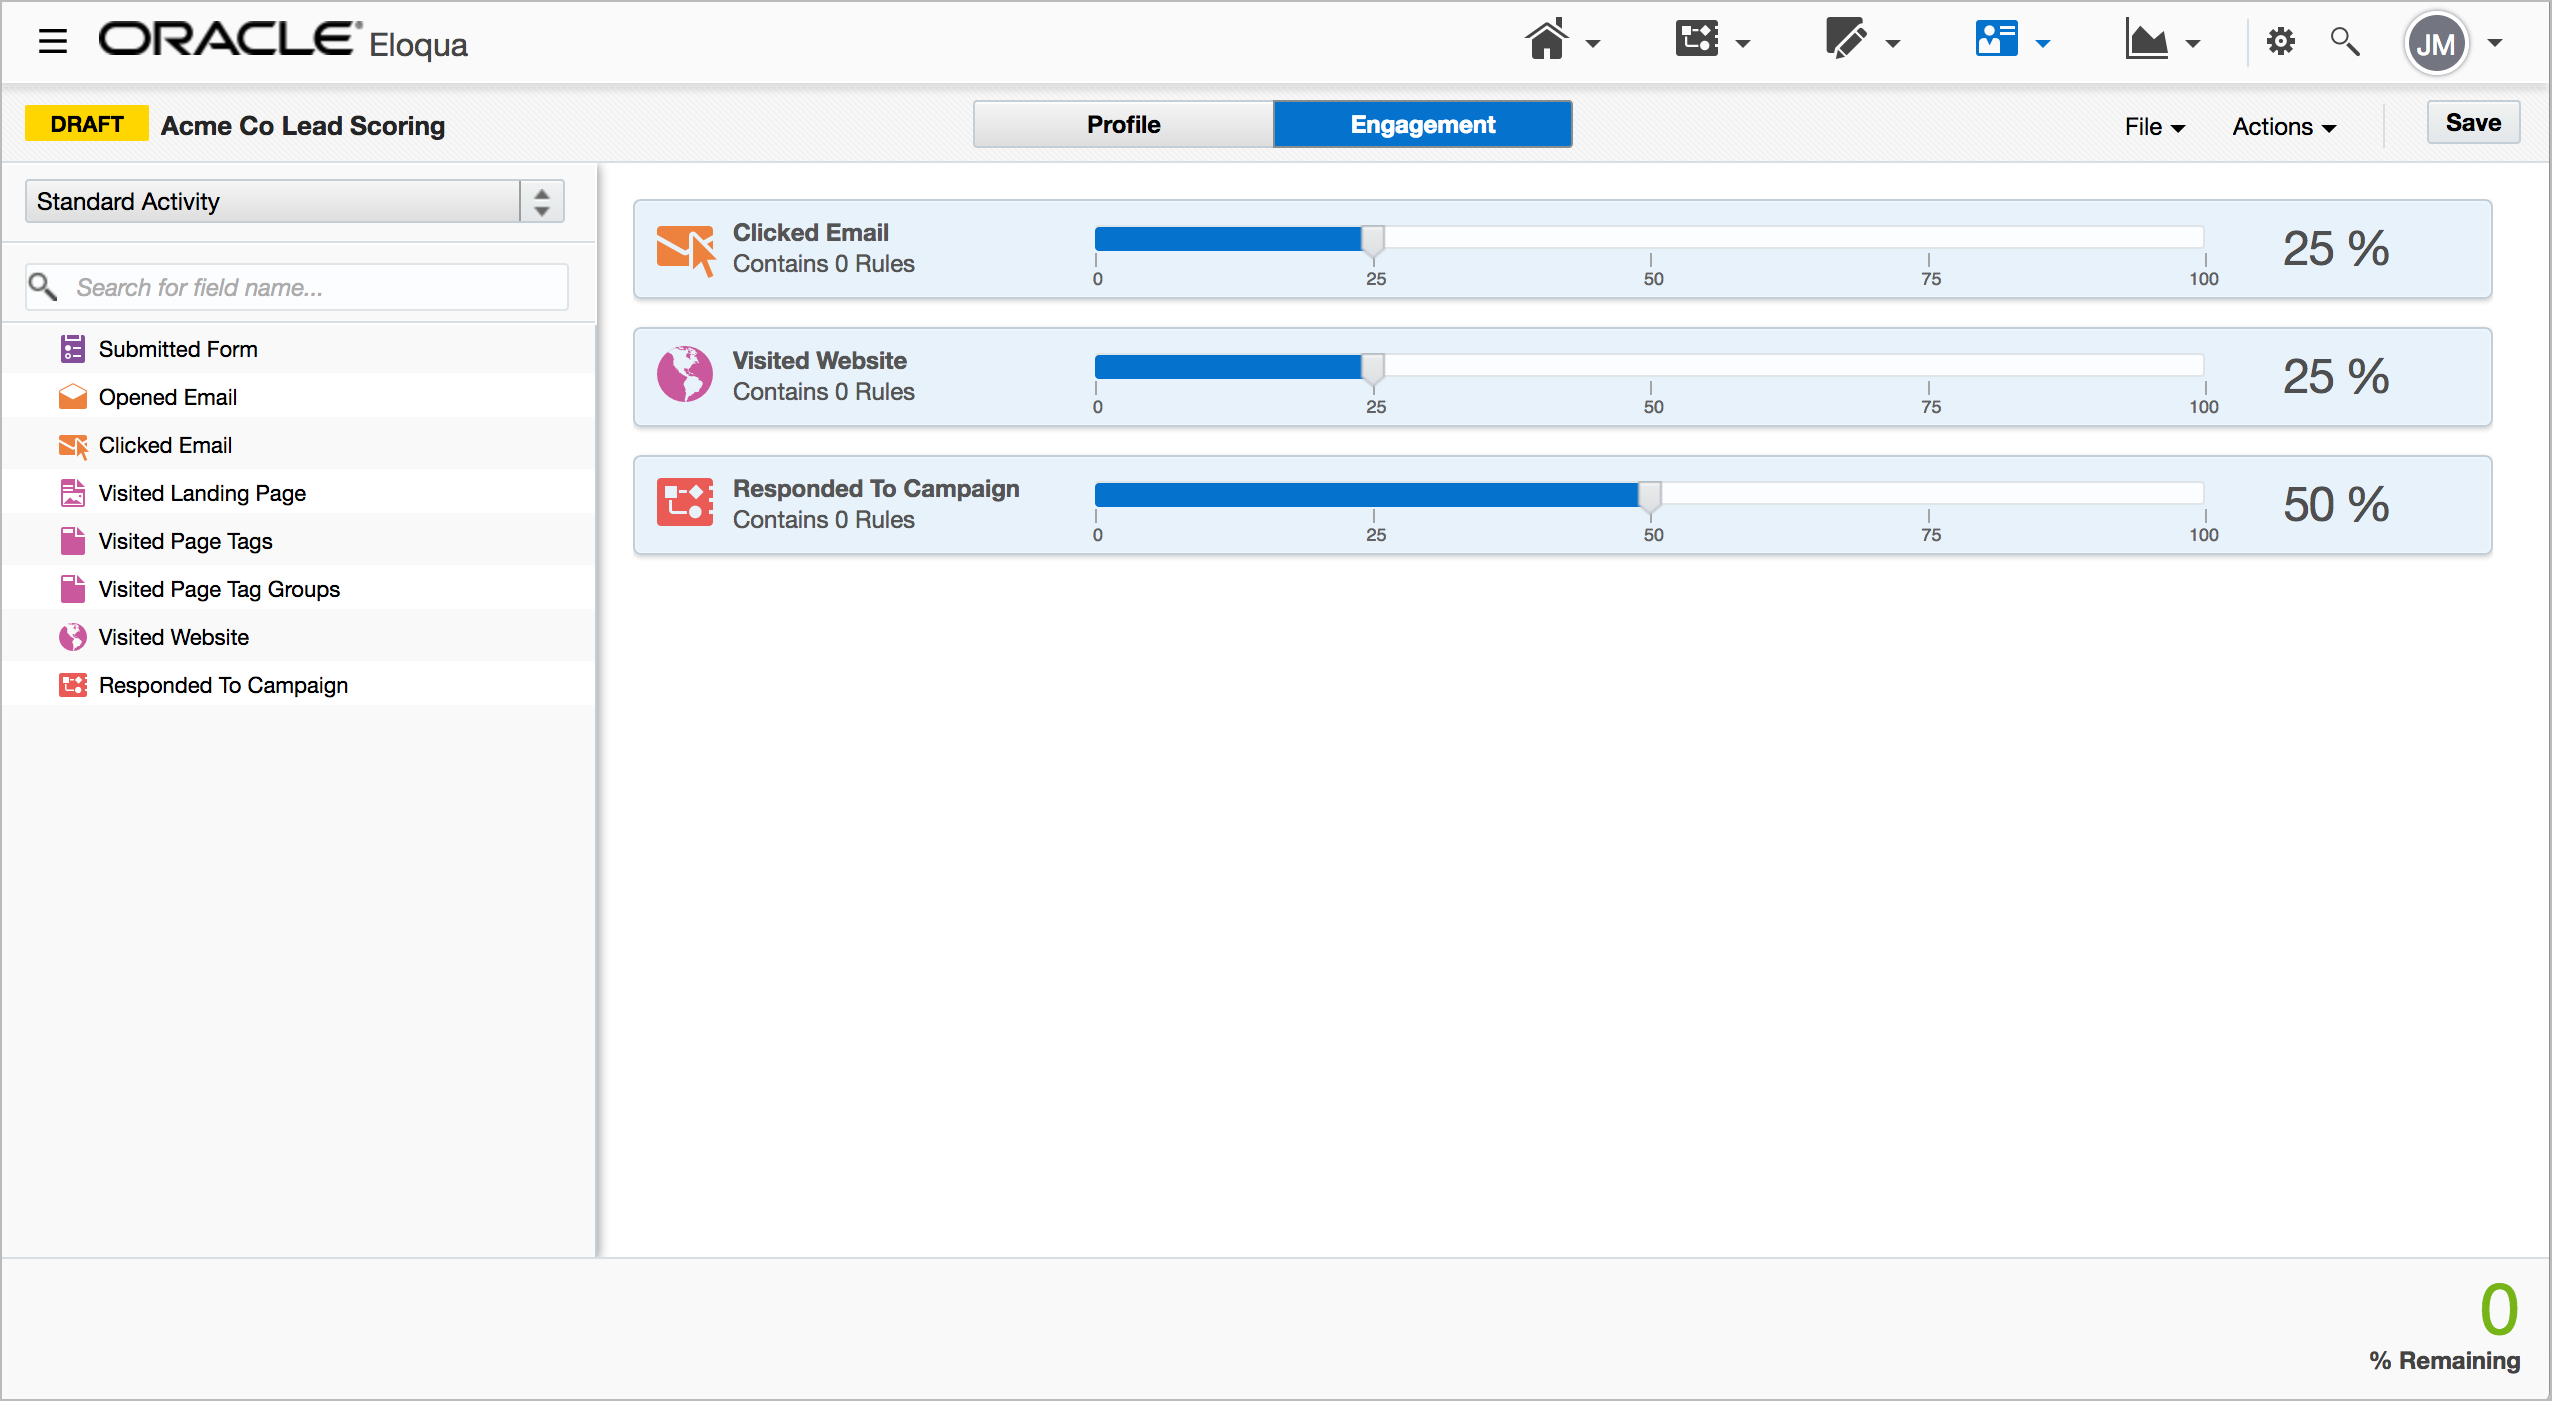 Oracle Eloqua Demo - Powerful Lead Management and Acceleration